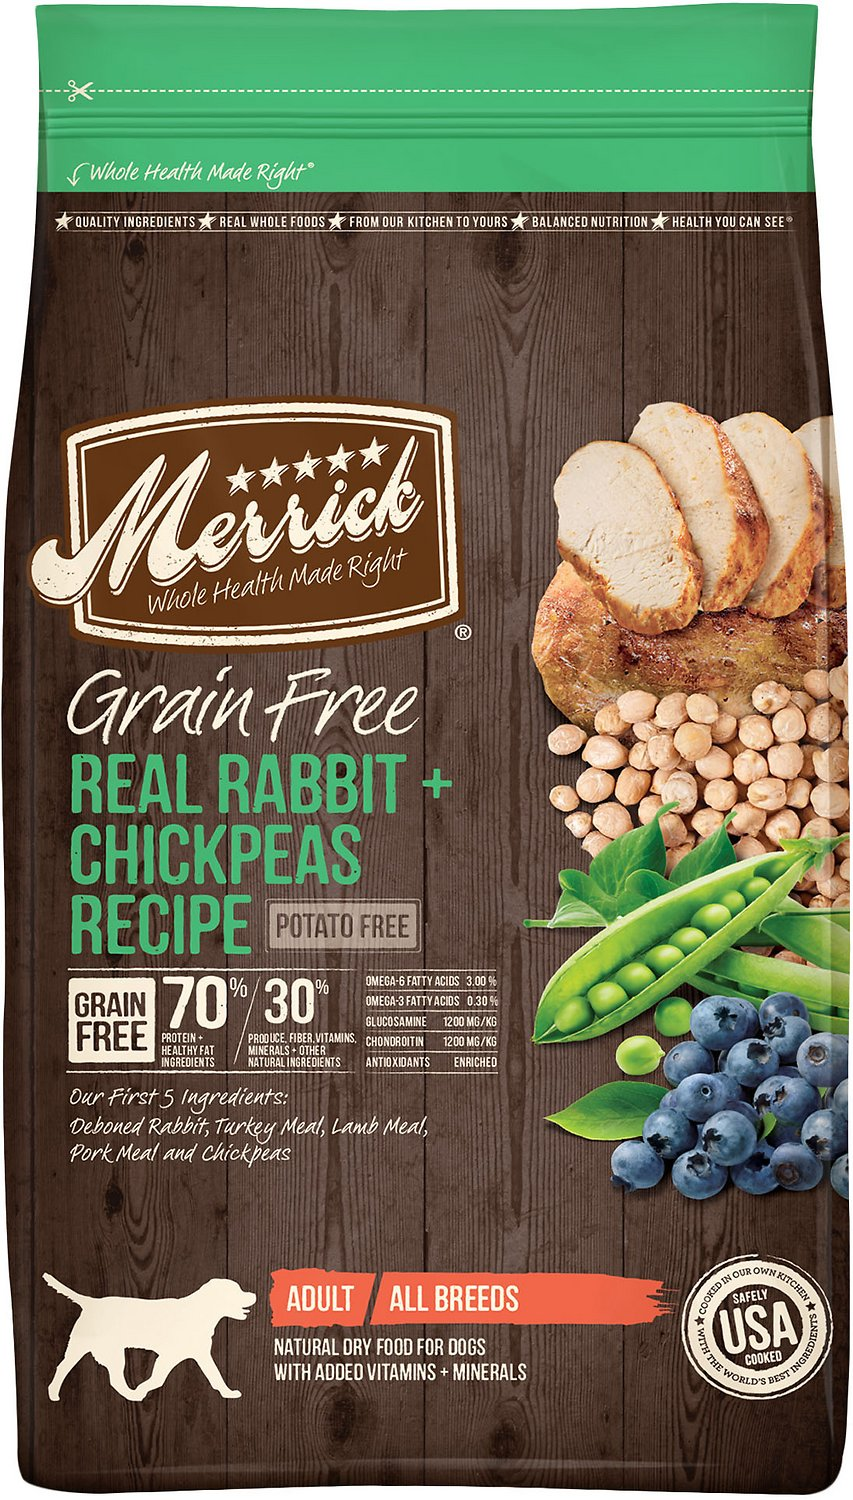 Merrick Grain-Free Real Rabbit + Chickpeas Recipe Dry Dog Food Image